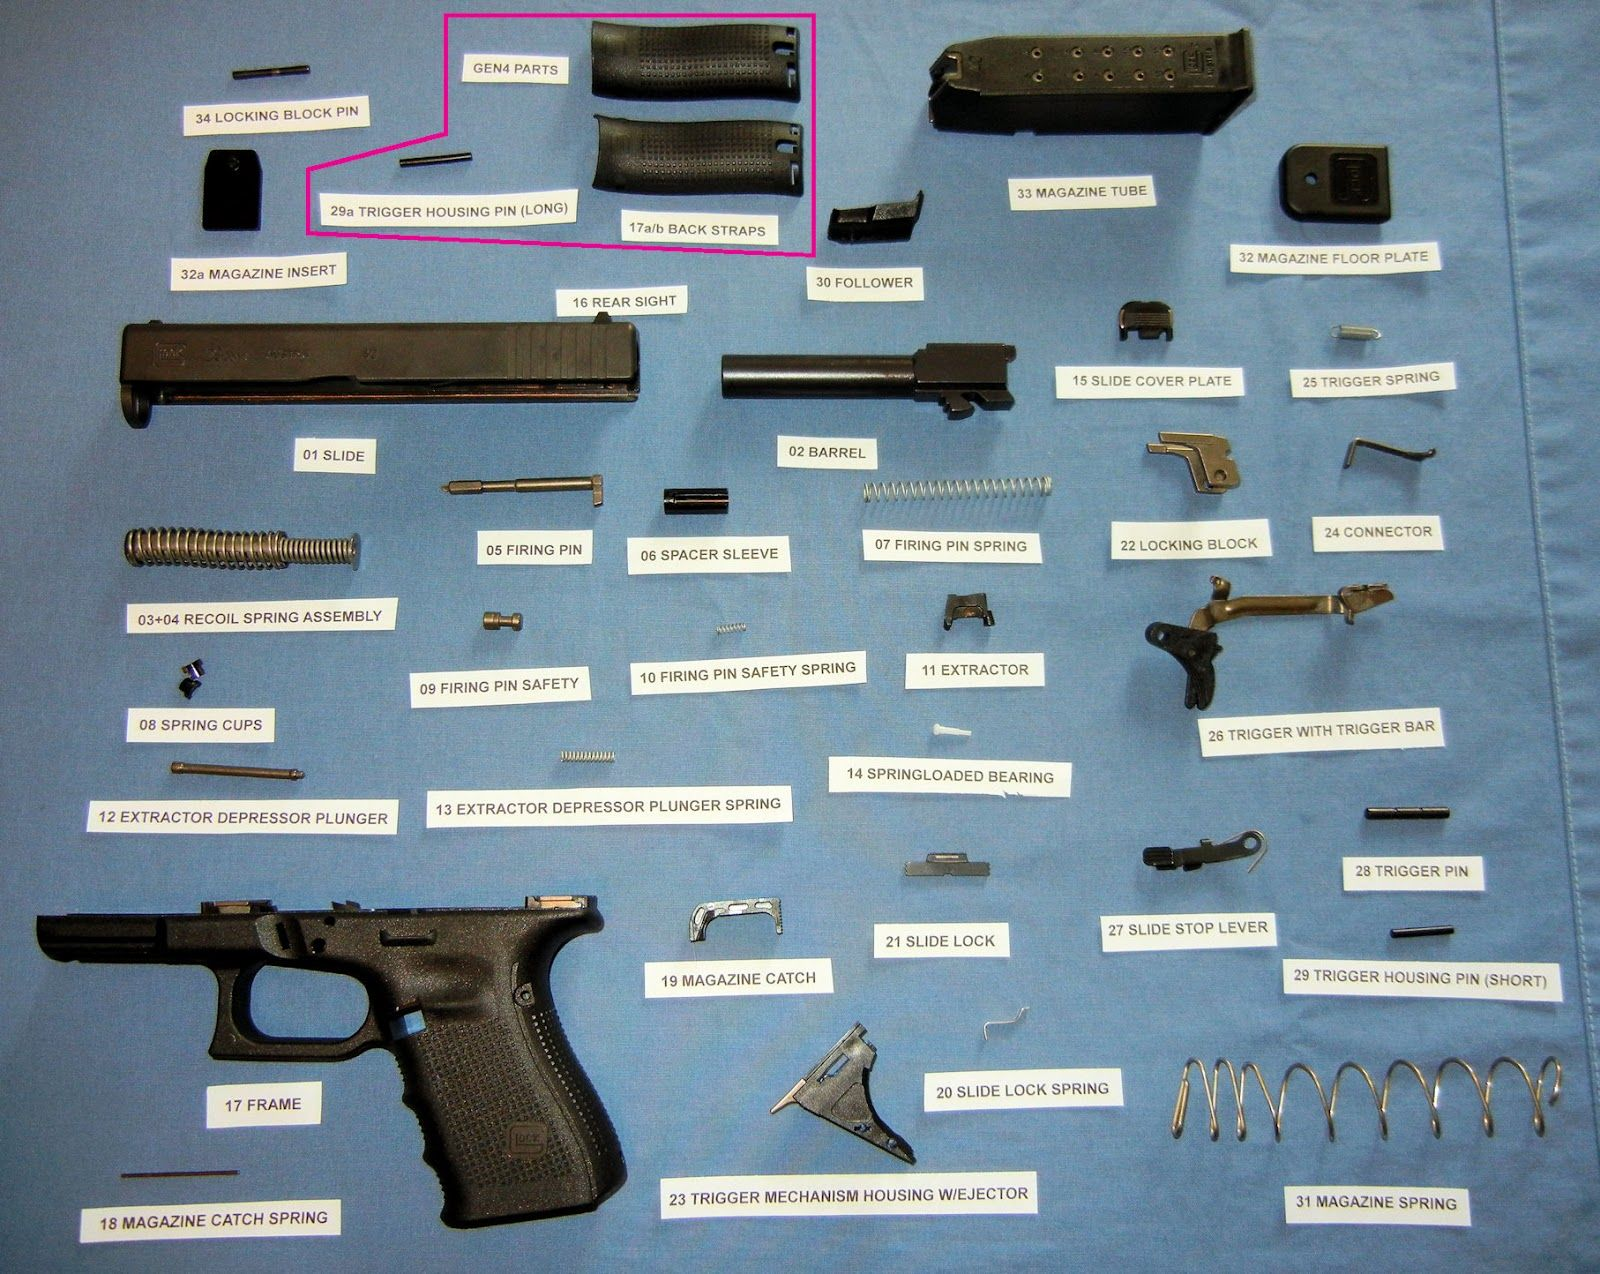 Pin By Rae Industries On Glock 17 G17 9x19mm Magazine Loader 703 Pistol Parts Diagram Internal Diagrams Find Our Speedloader Now Http Amazon